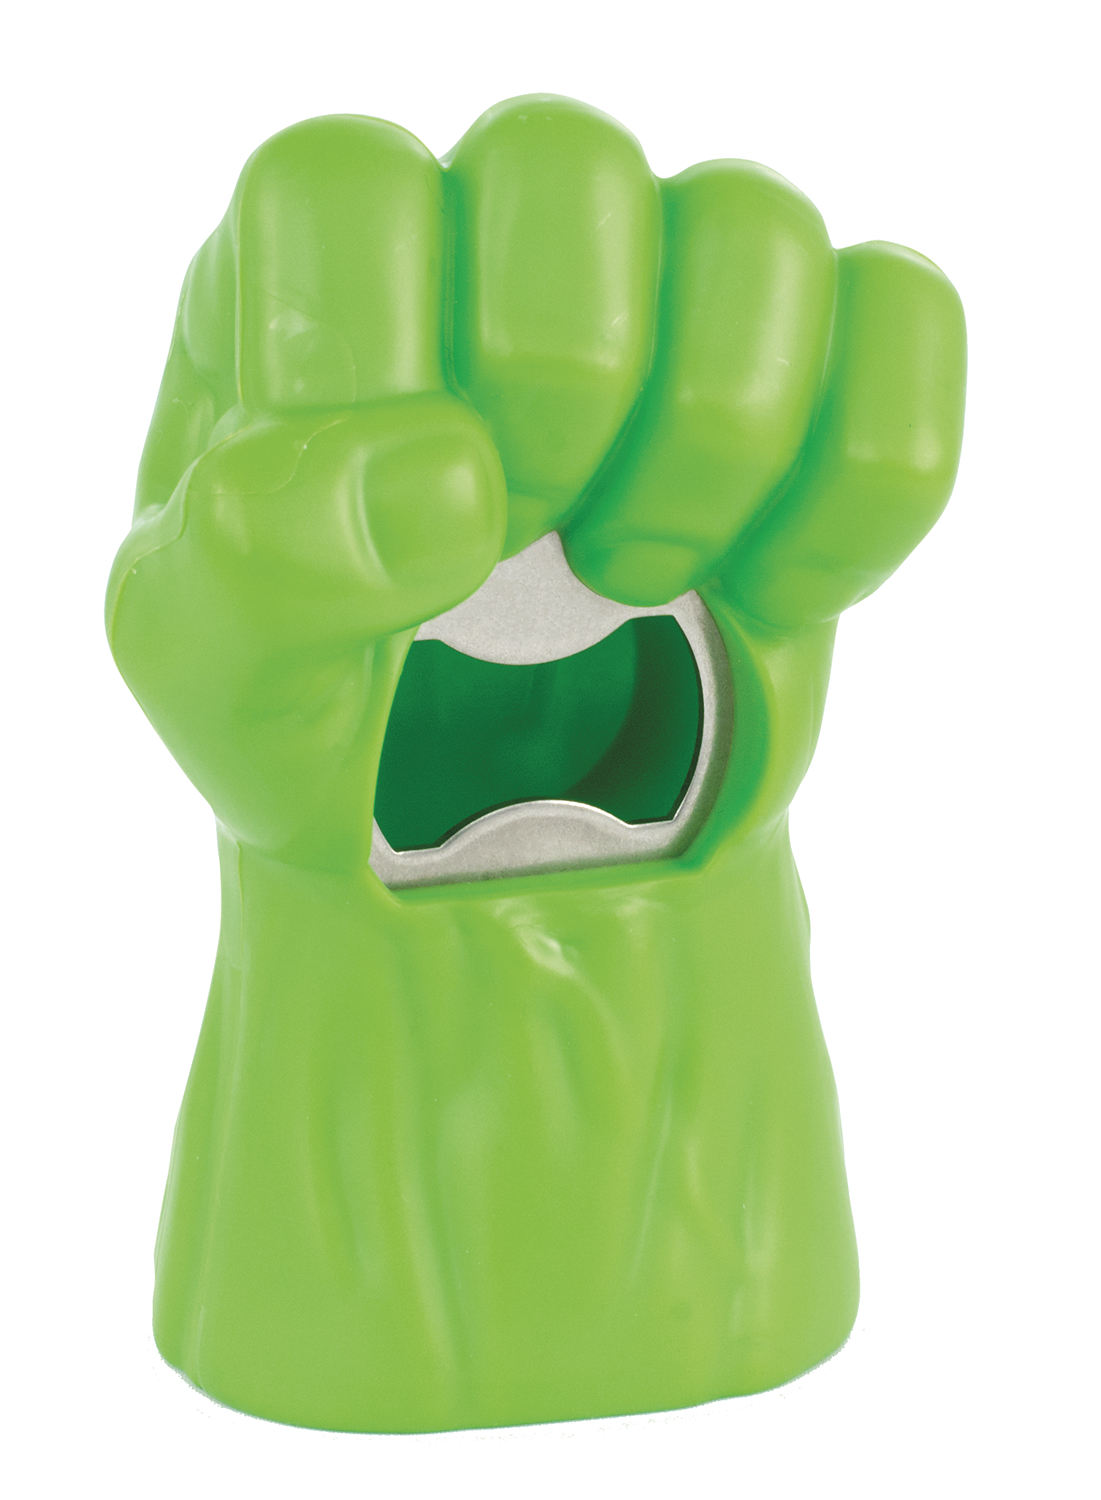 MARVEL HULK FIST BOTTLE OPENER